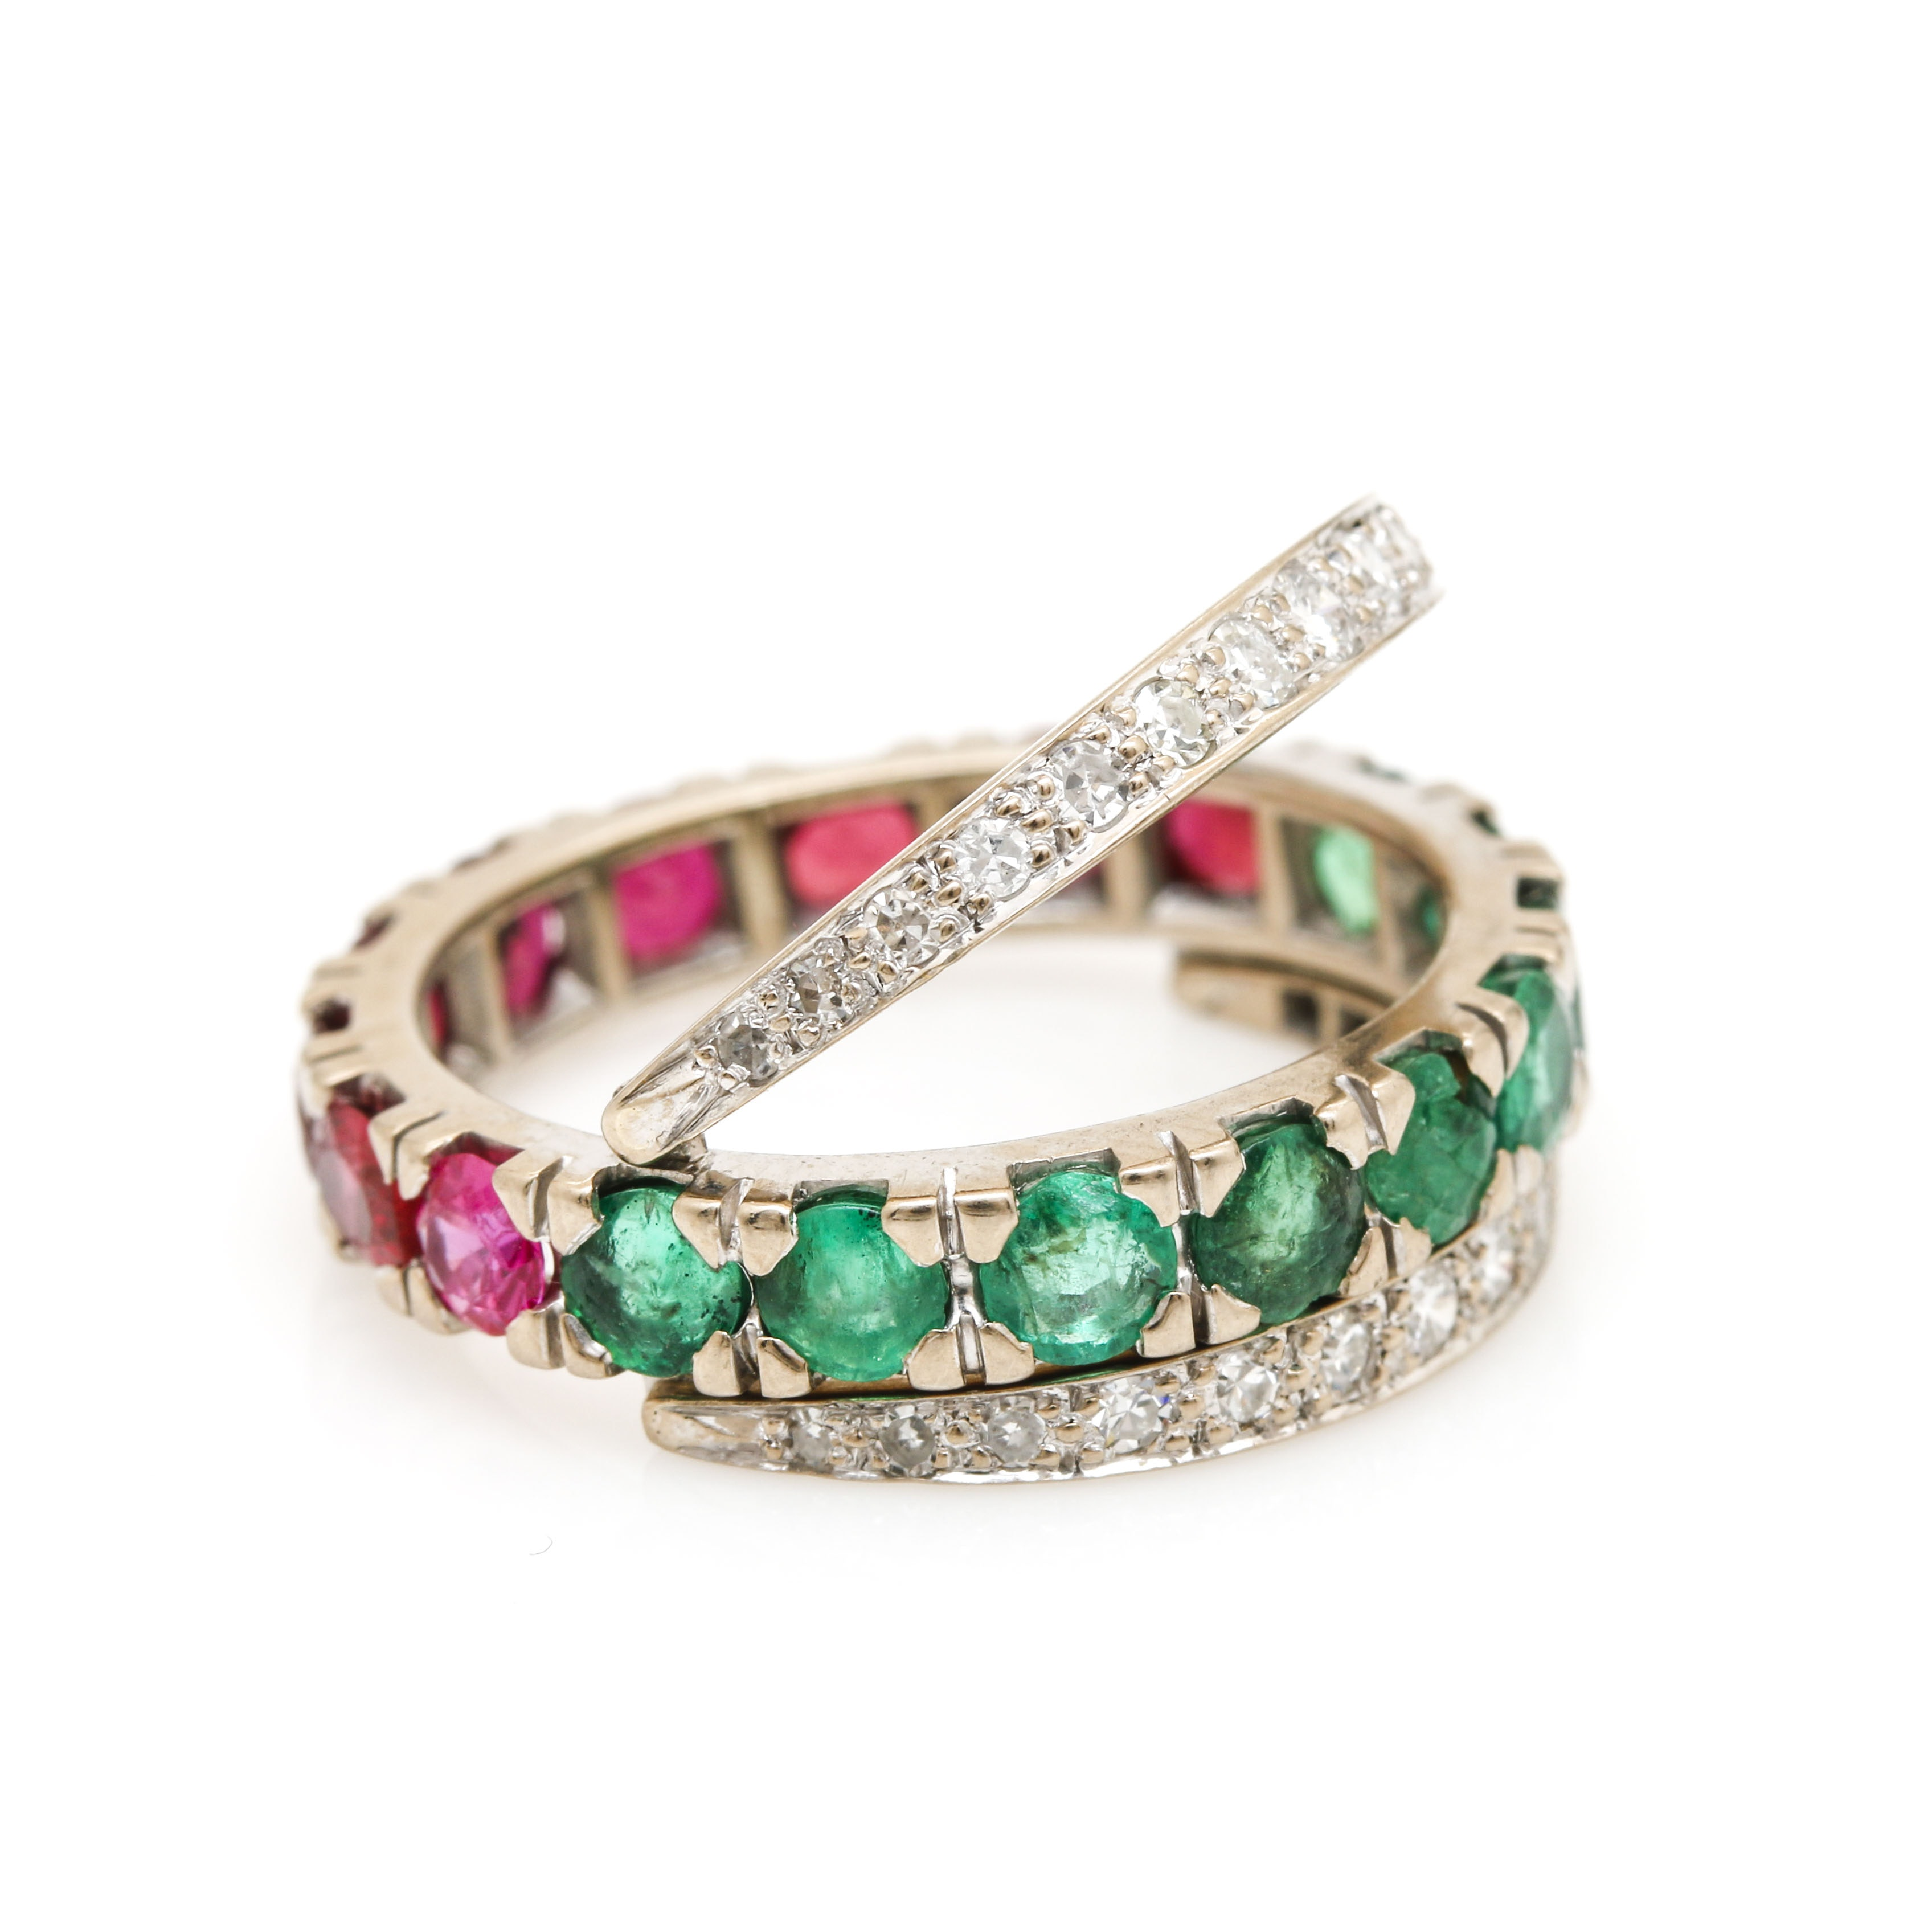 Vintage 18K White Gold Ruby, Emerald, and Diamond Reversible Ring